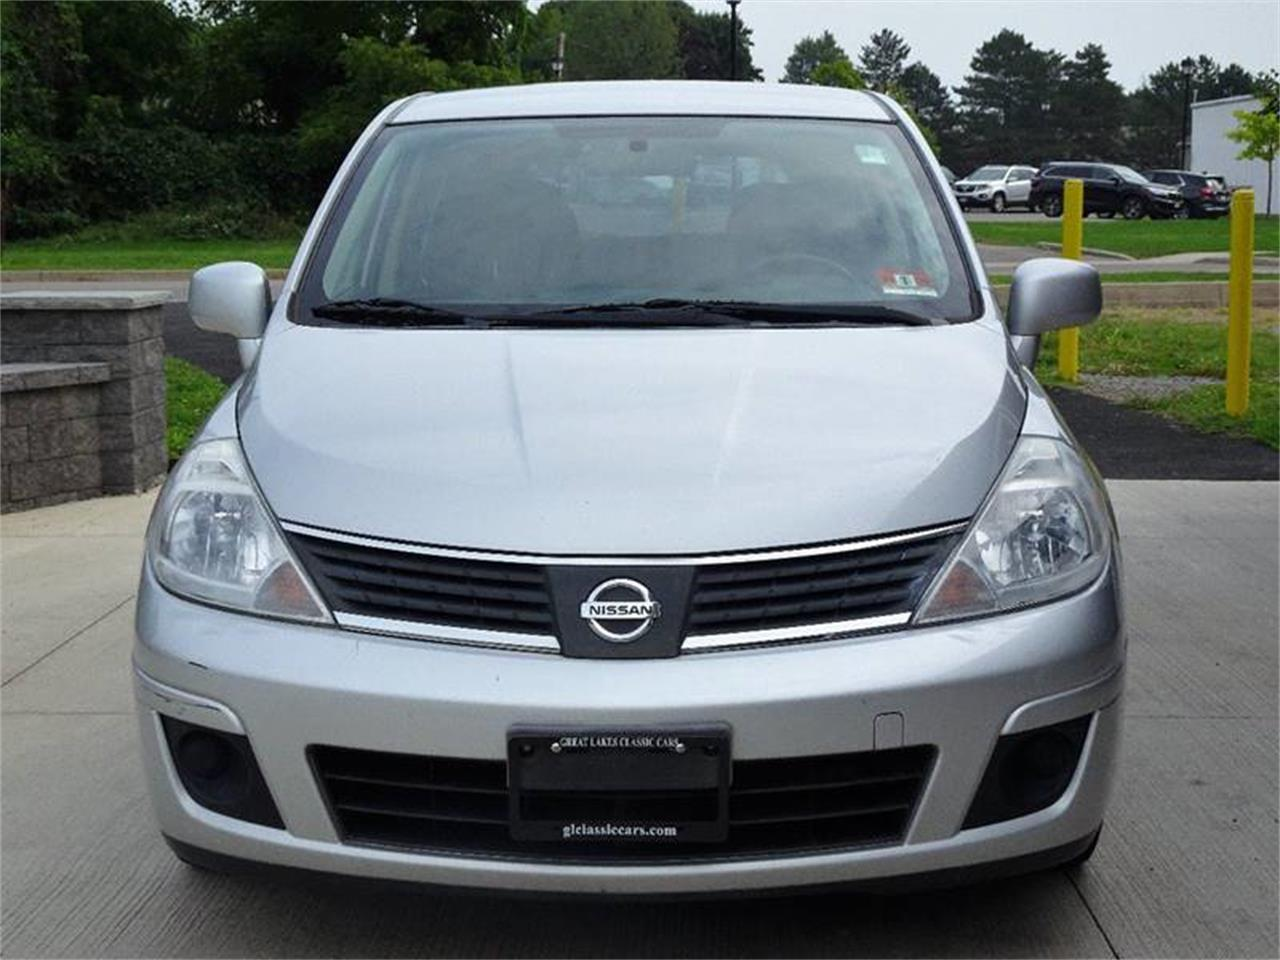 2007 Nissan Versa for sale in Hilton, NY – photo 3